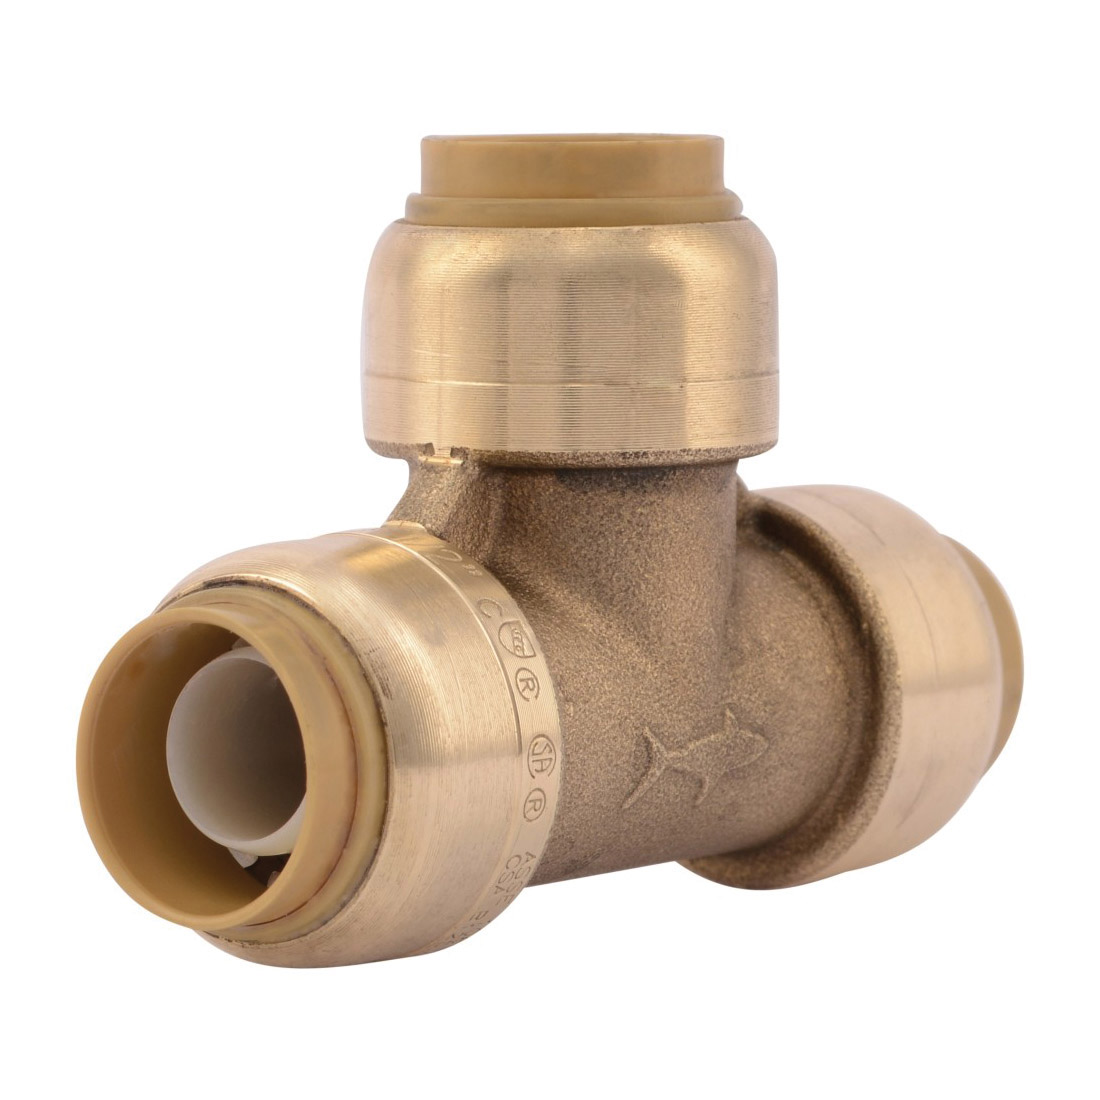 Sharkbite® U362LF Pipe Tee, 1/2 in Nominal, Push-Fit End Style, Brass, Natural Brass/Chrome Plated, Import